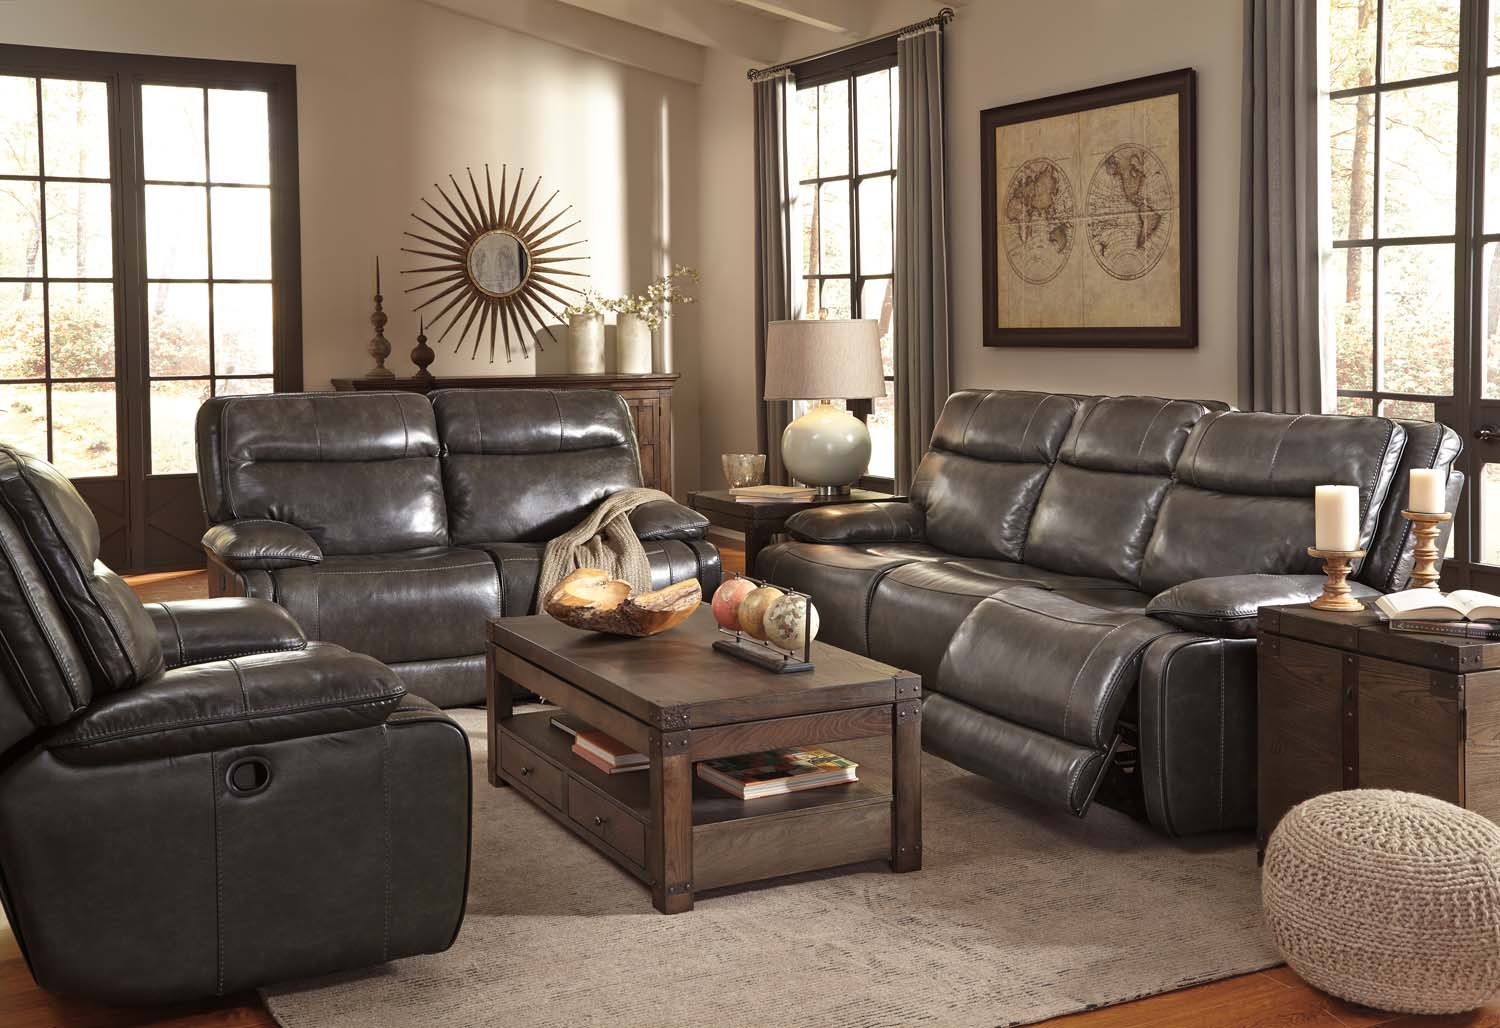 U72601U1 Palladum Metal 6 Piece Living Room Set by Ashley